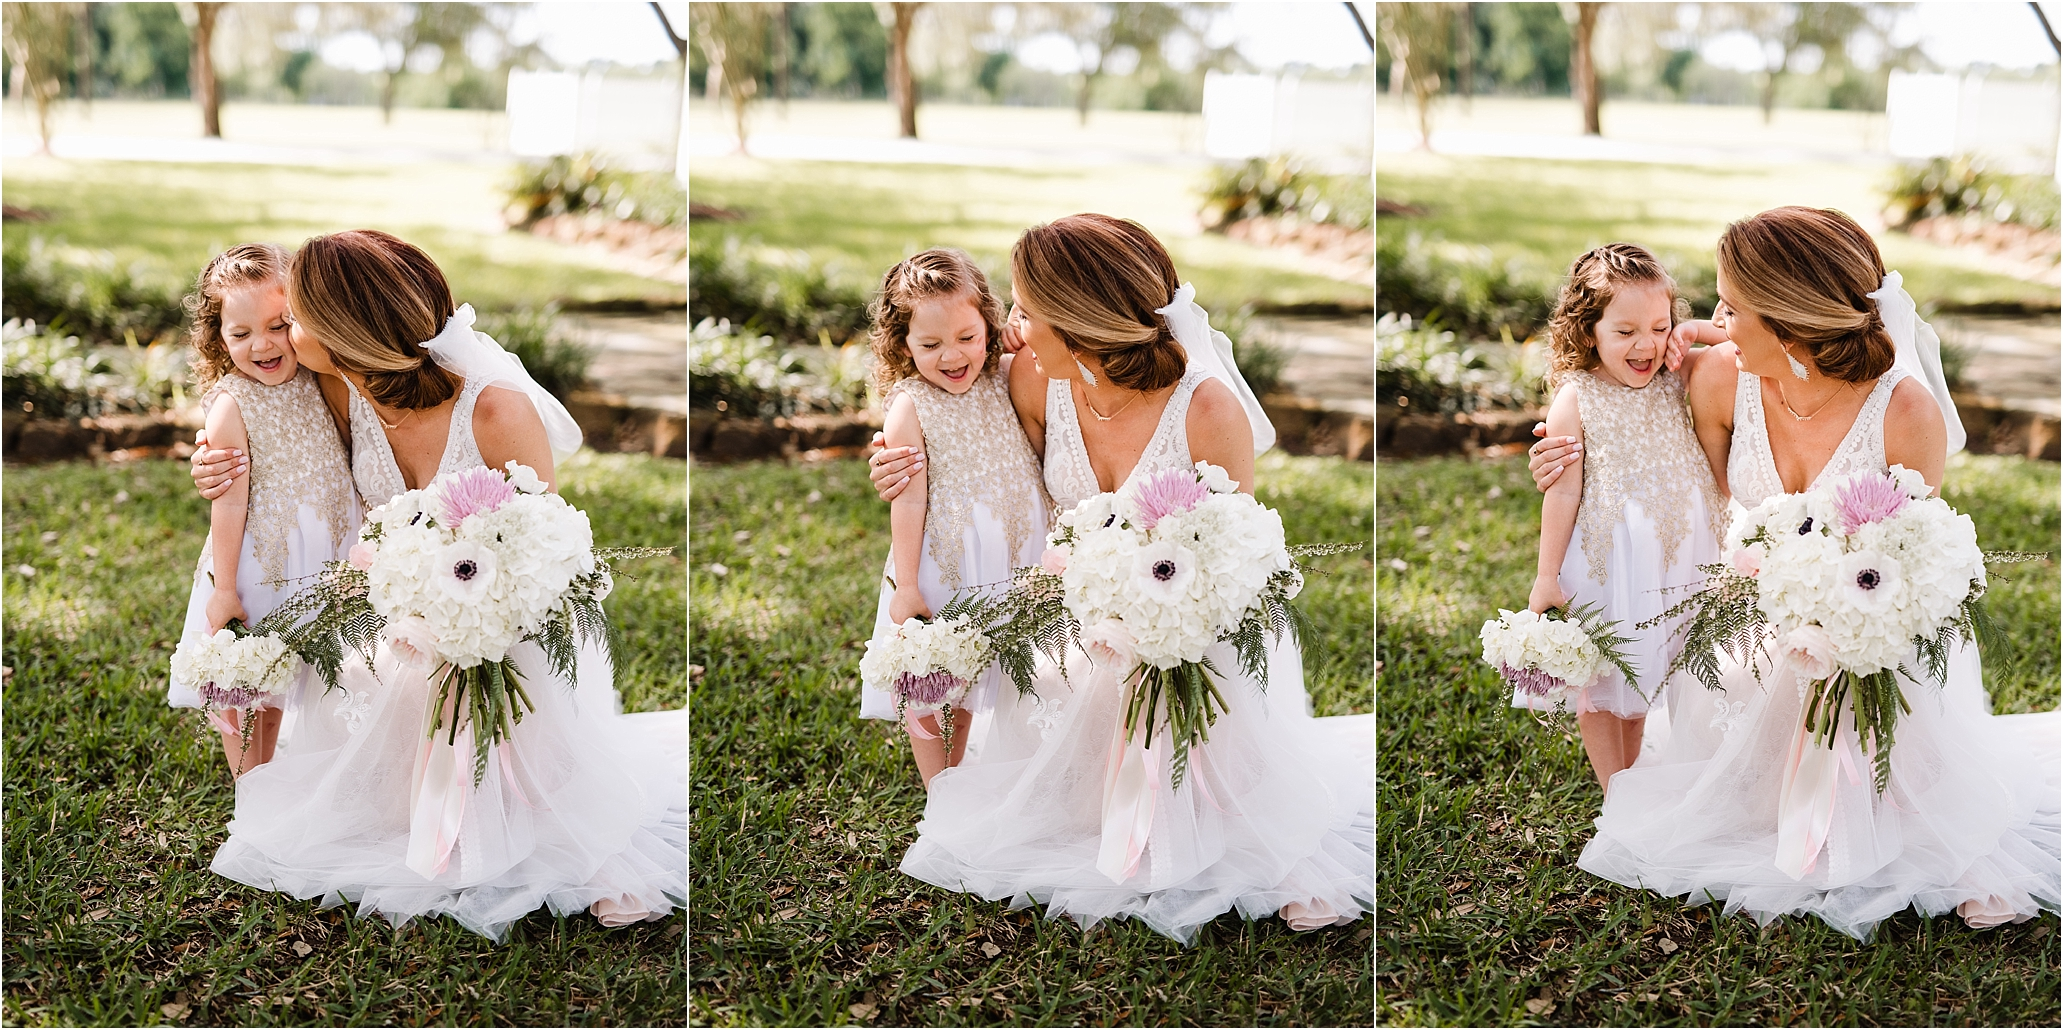 PattisonHouse_TexasWeddingPhotographer_CarlyCrockett&MattBrownWedding_0083.jpg